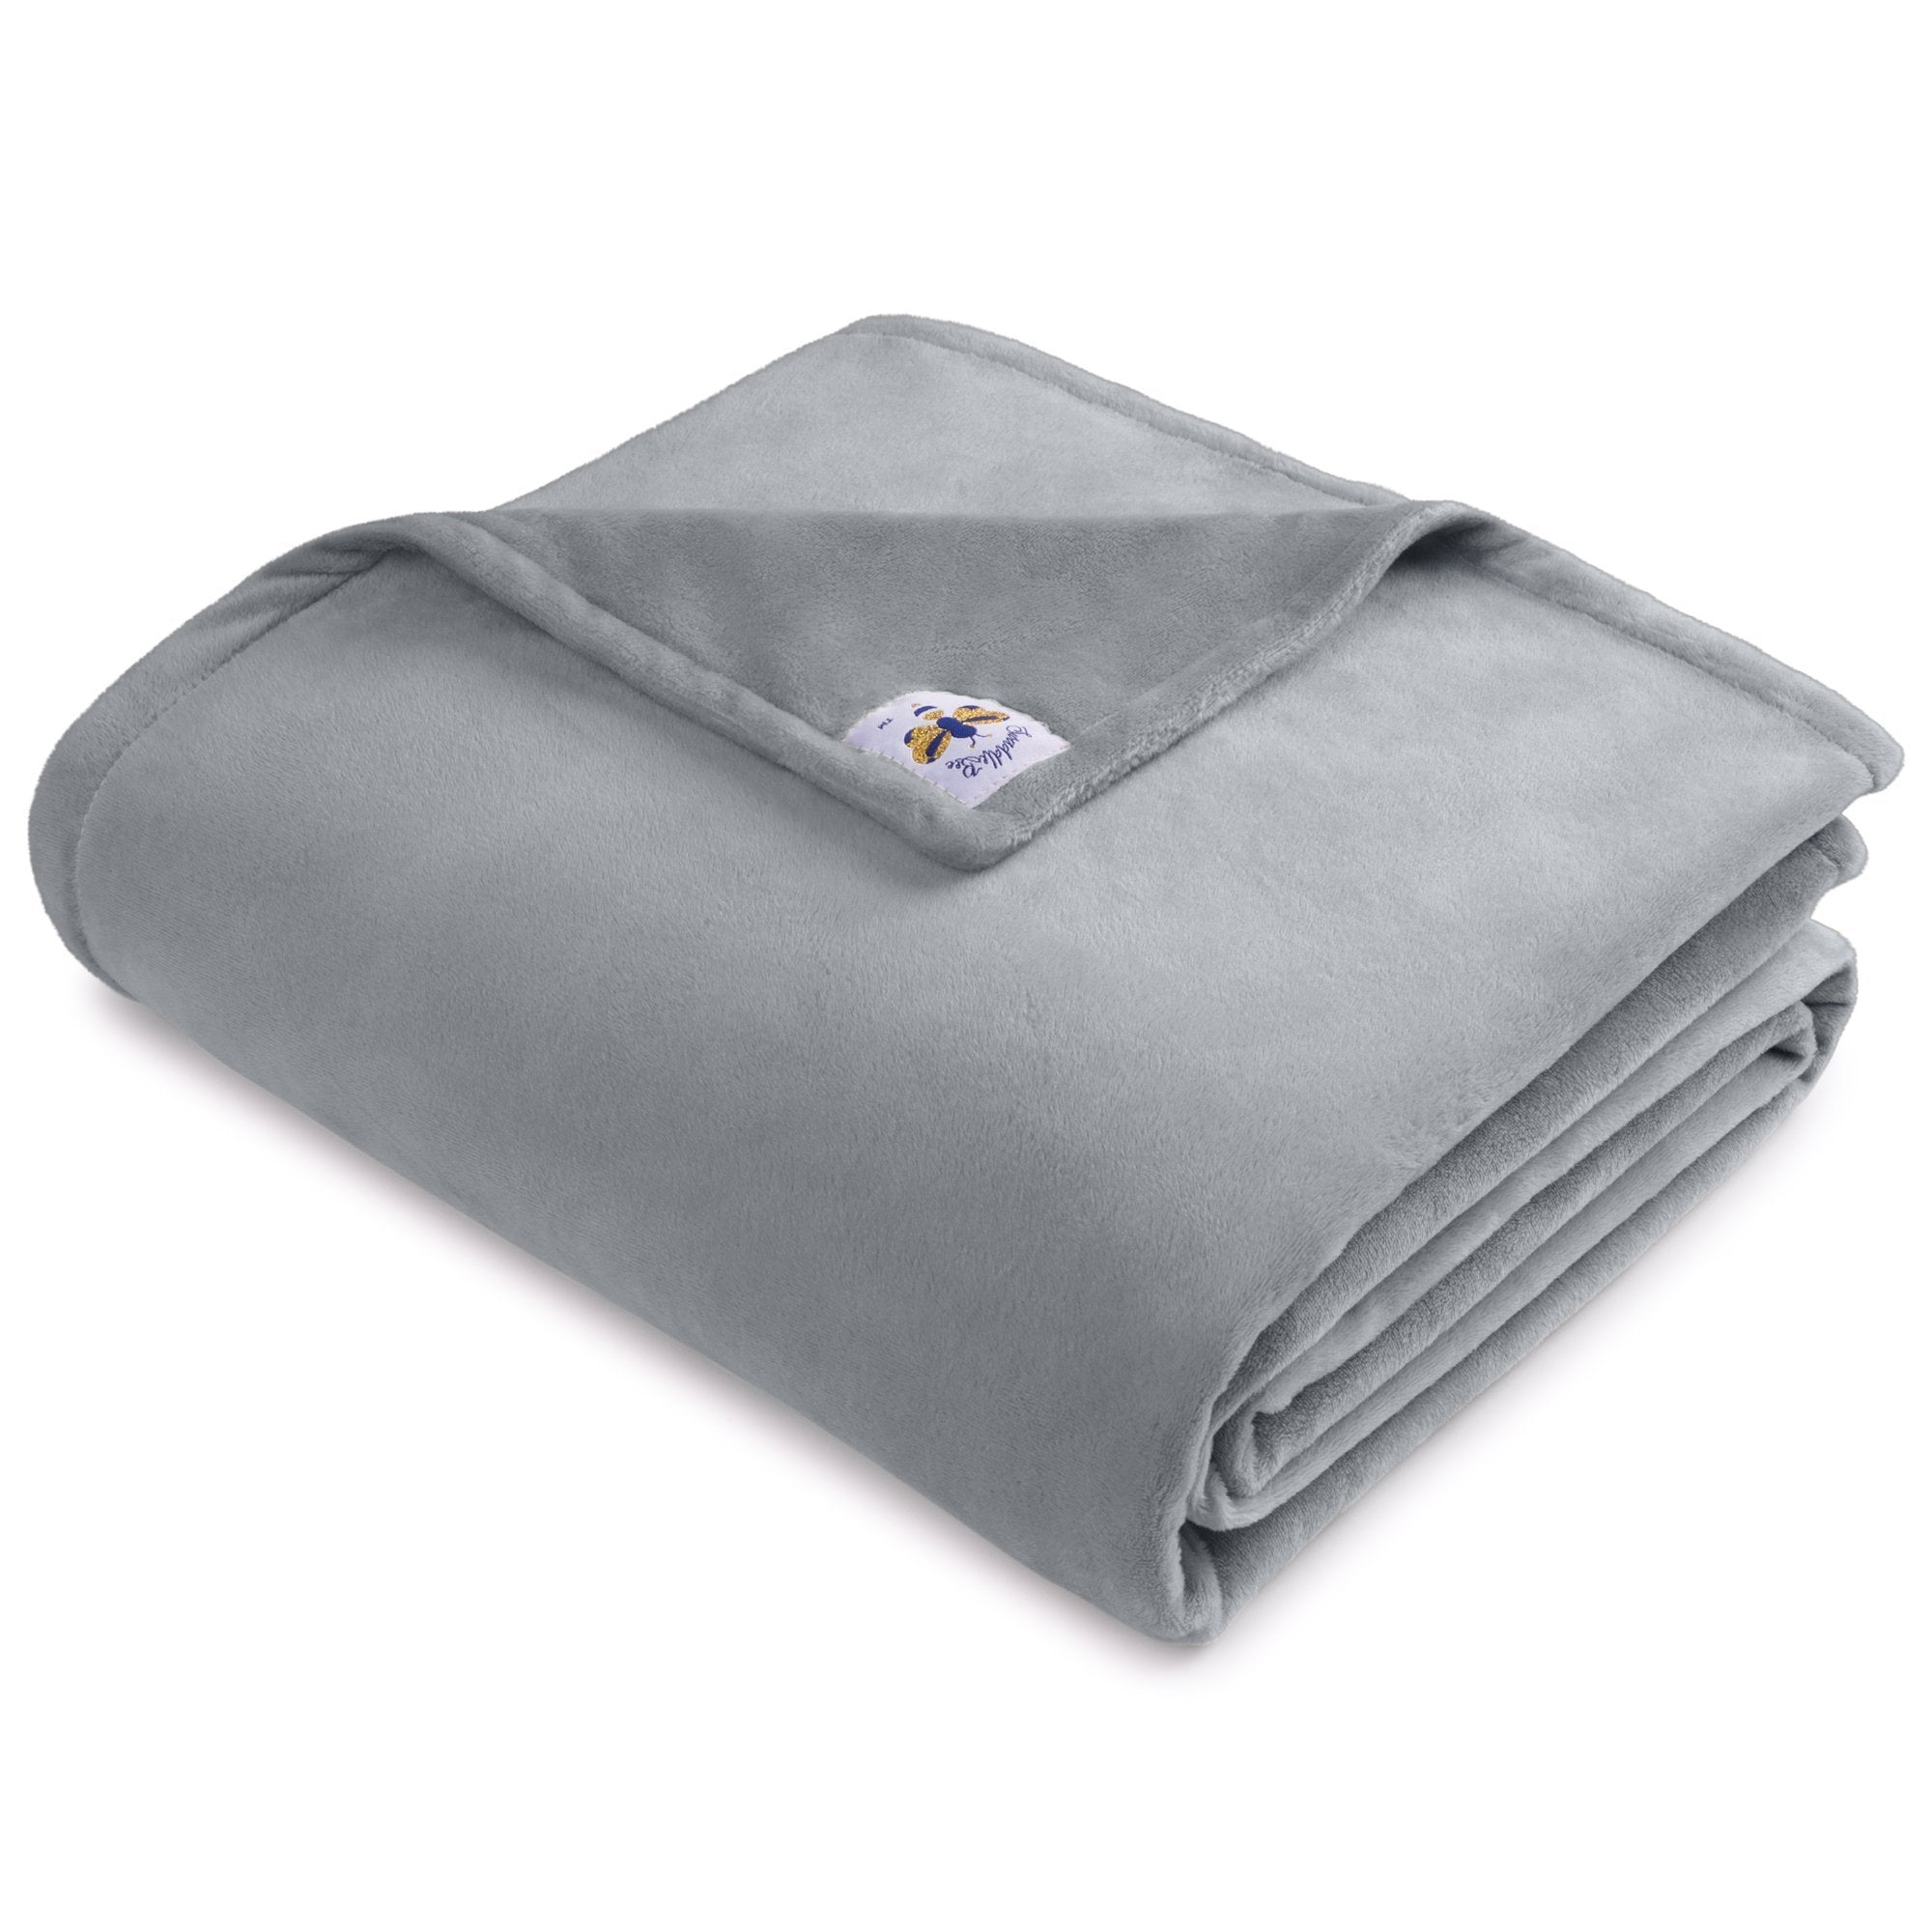 BiggerBee Minky Throw Blanket Solid Light Grey